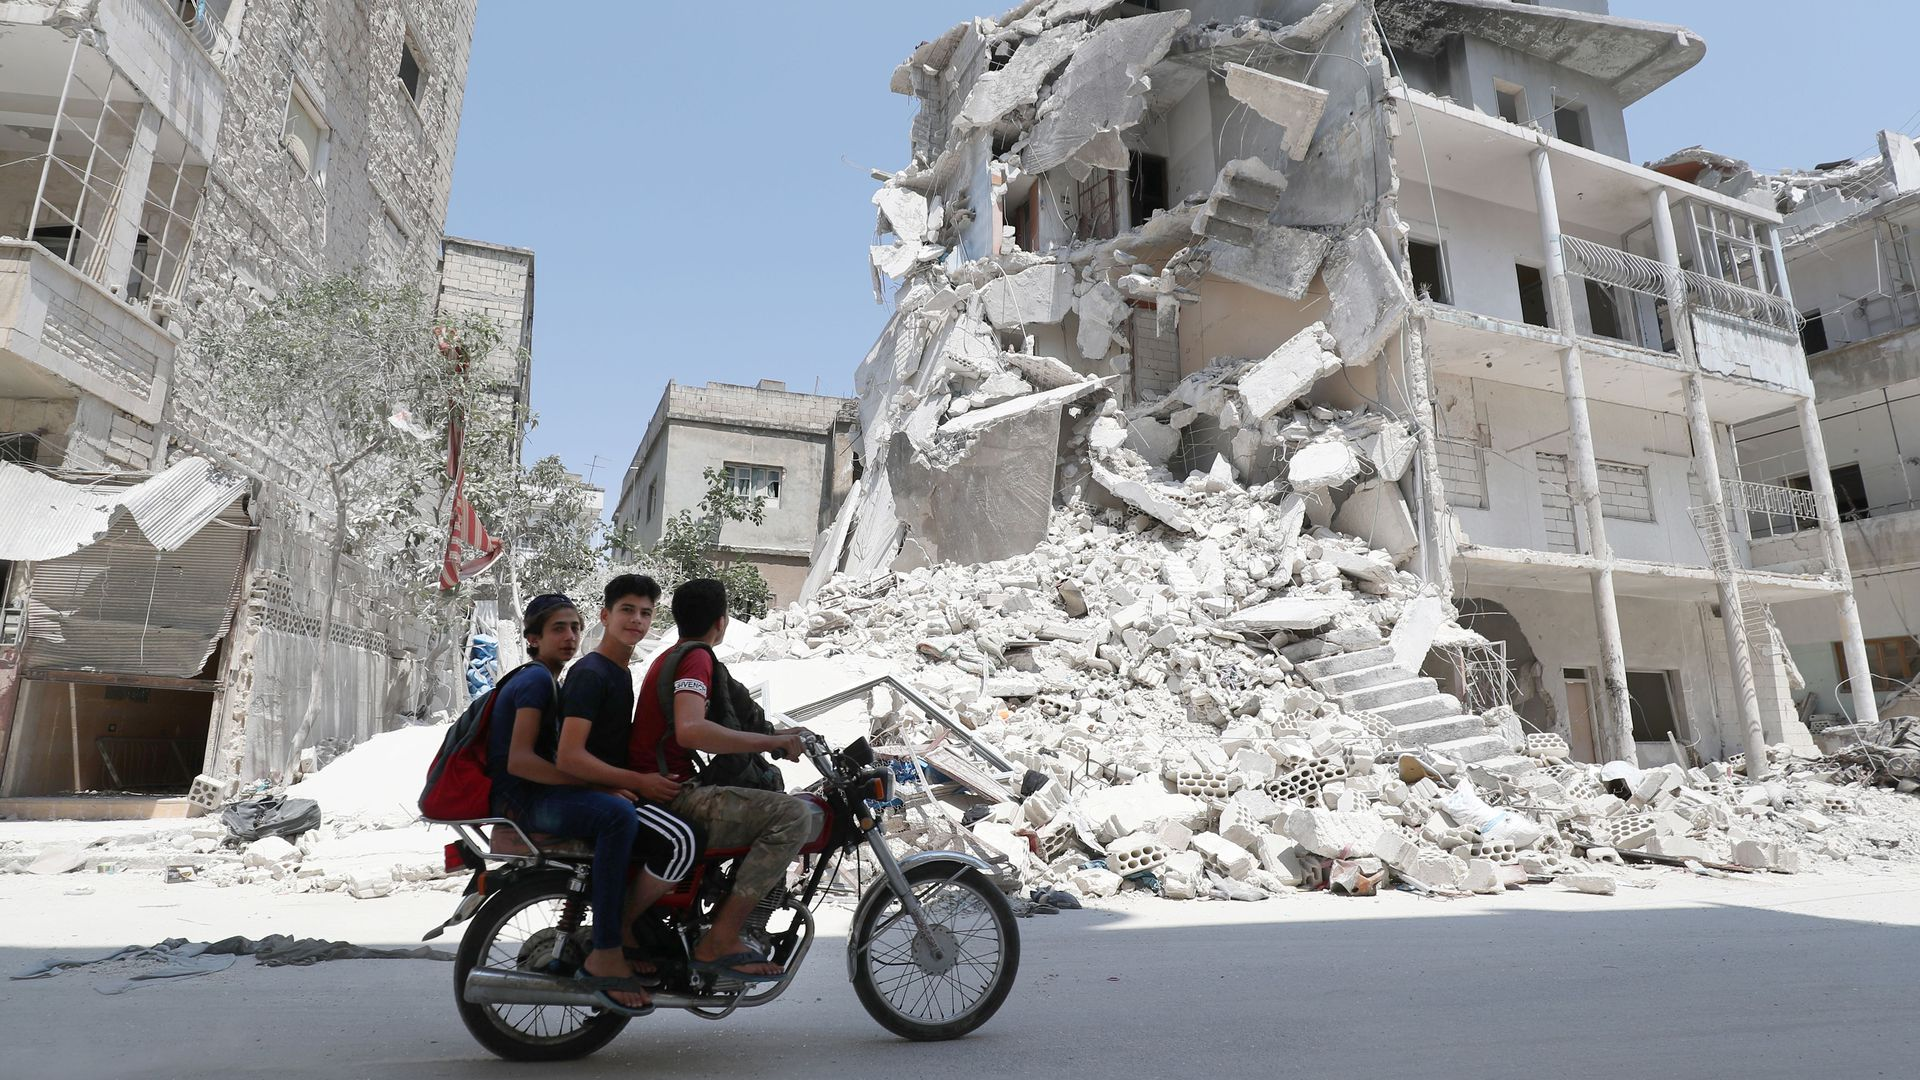 Men on a motorcycle ride by an airstrike-damaged building